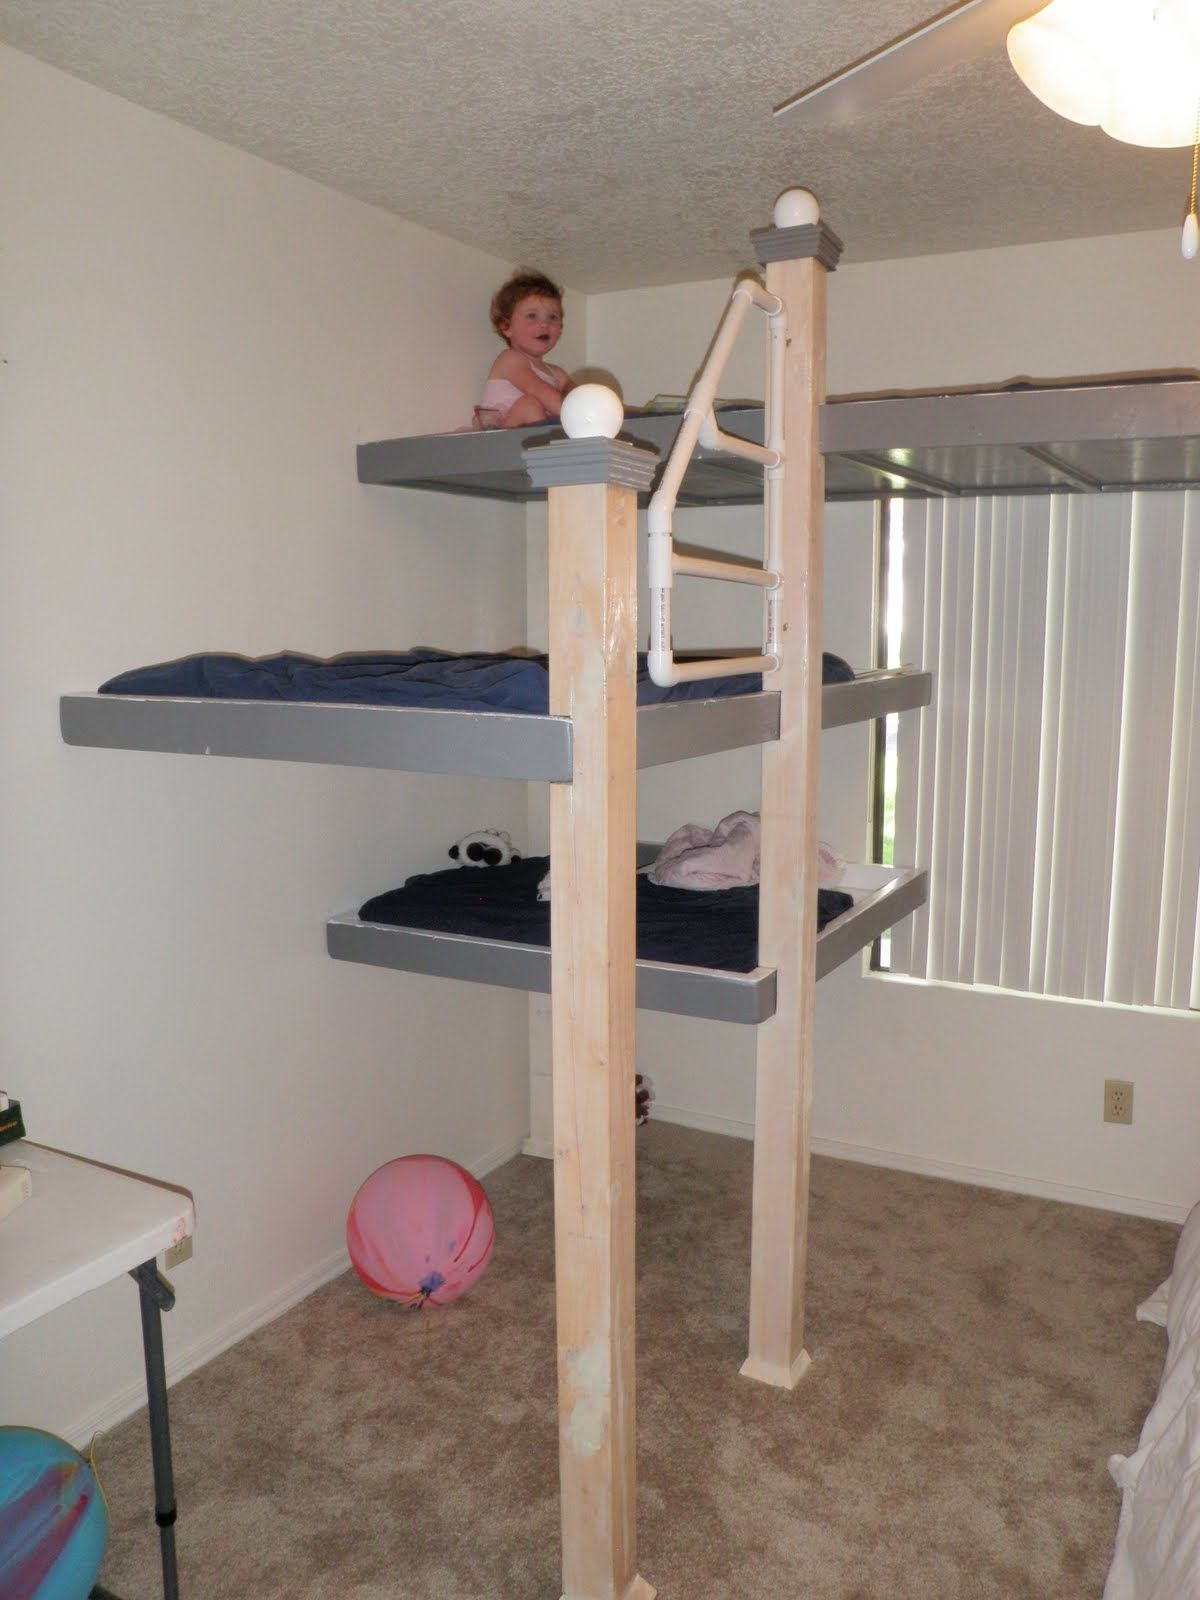 Pin By Kapo Clothing On Kapo Posts Creative Beds Cool Beds Bed